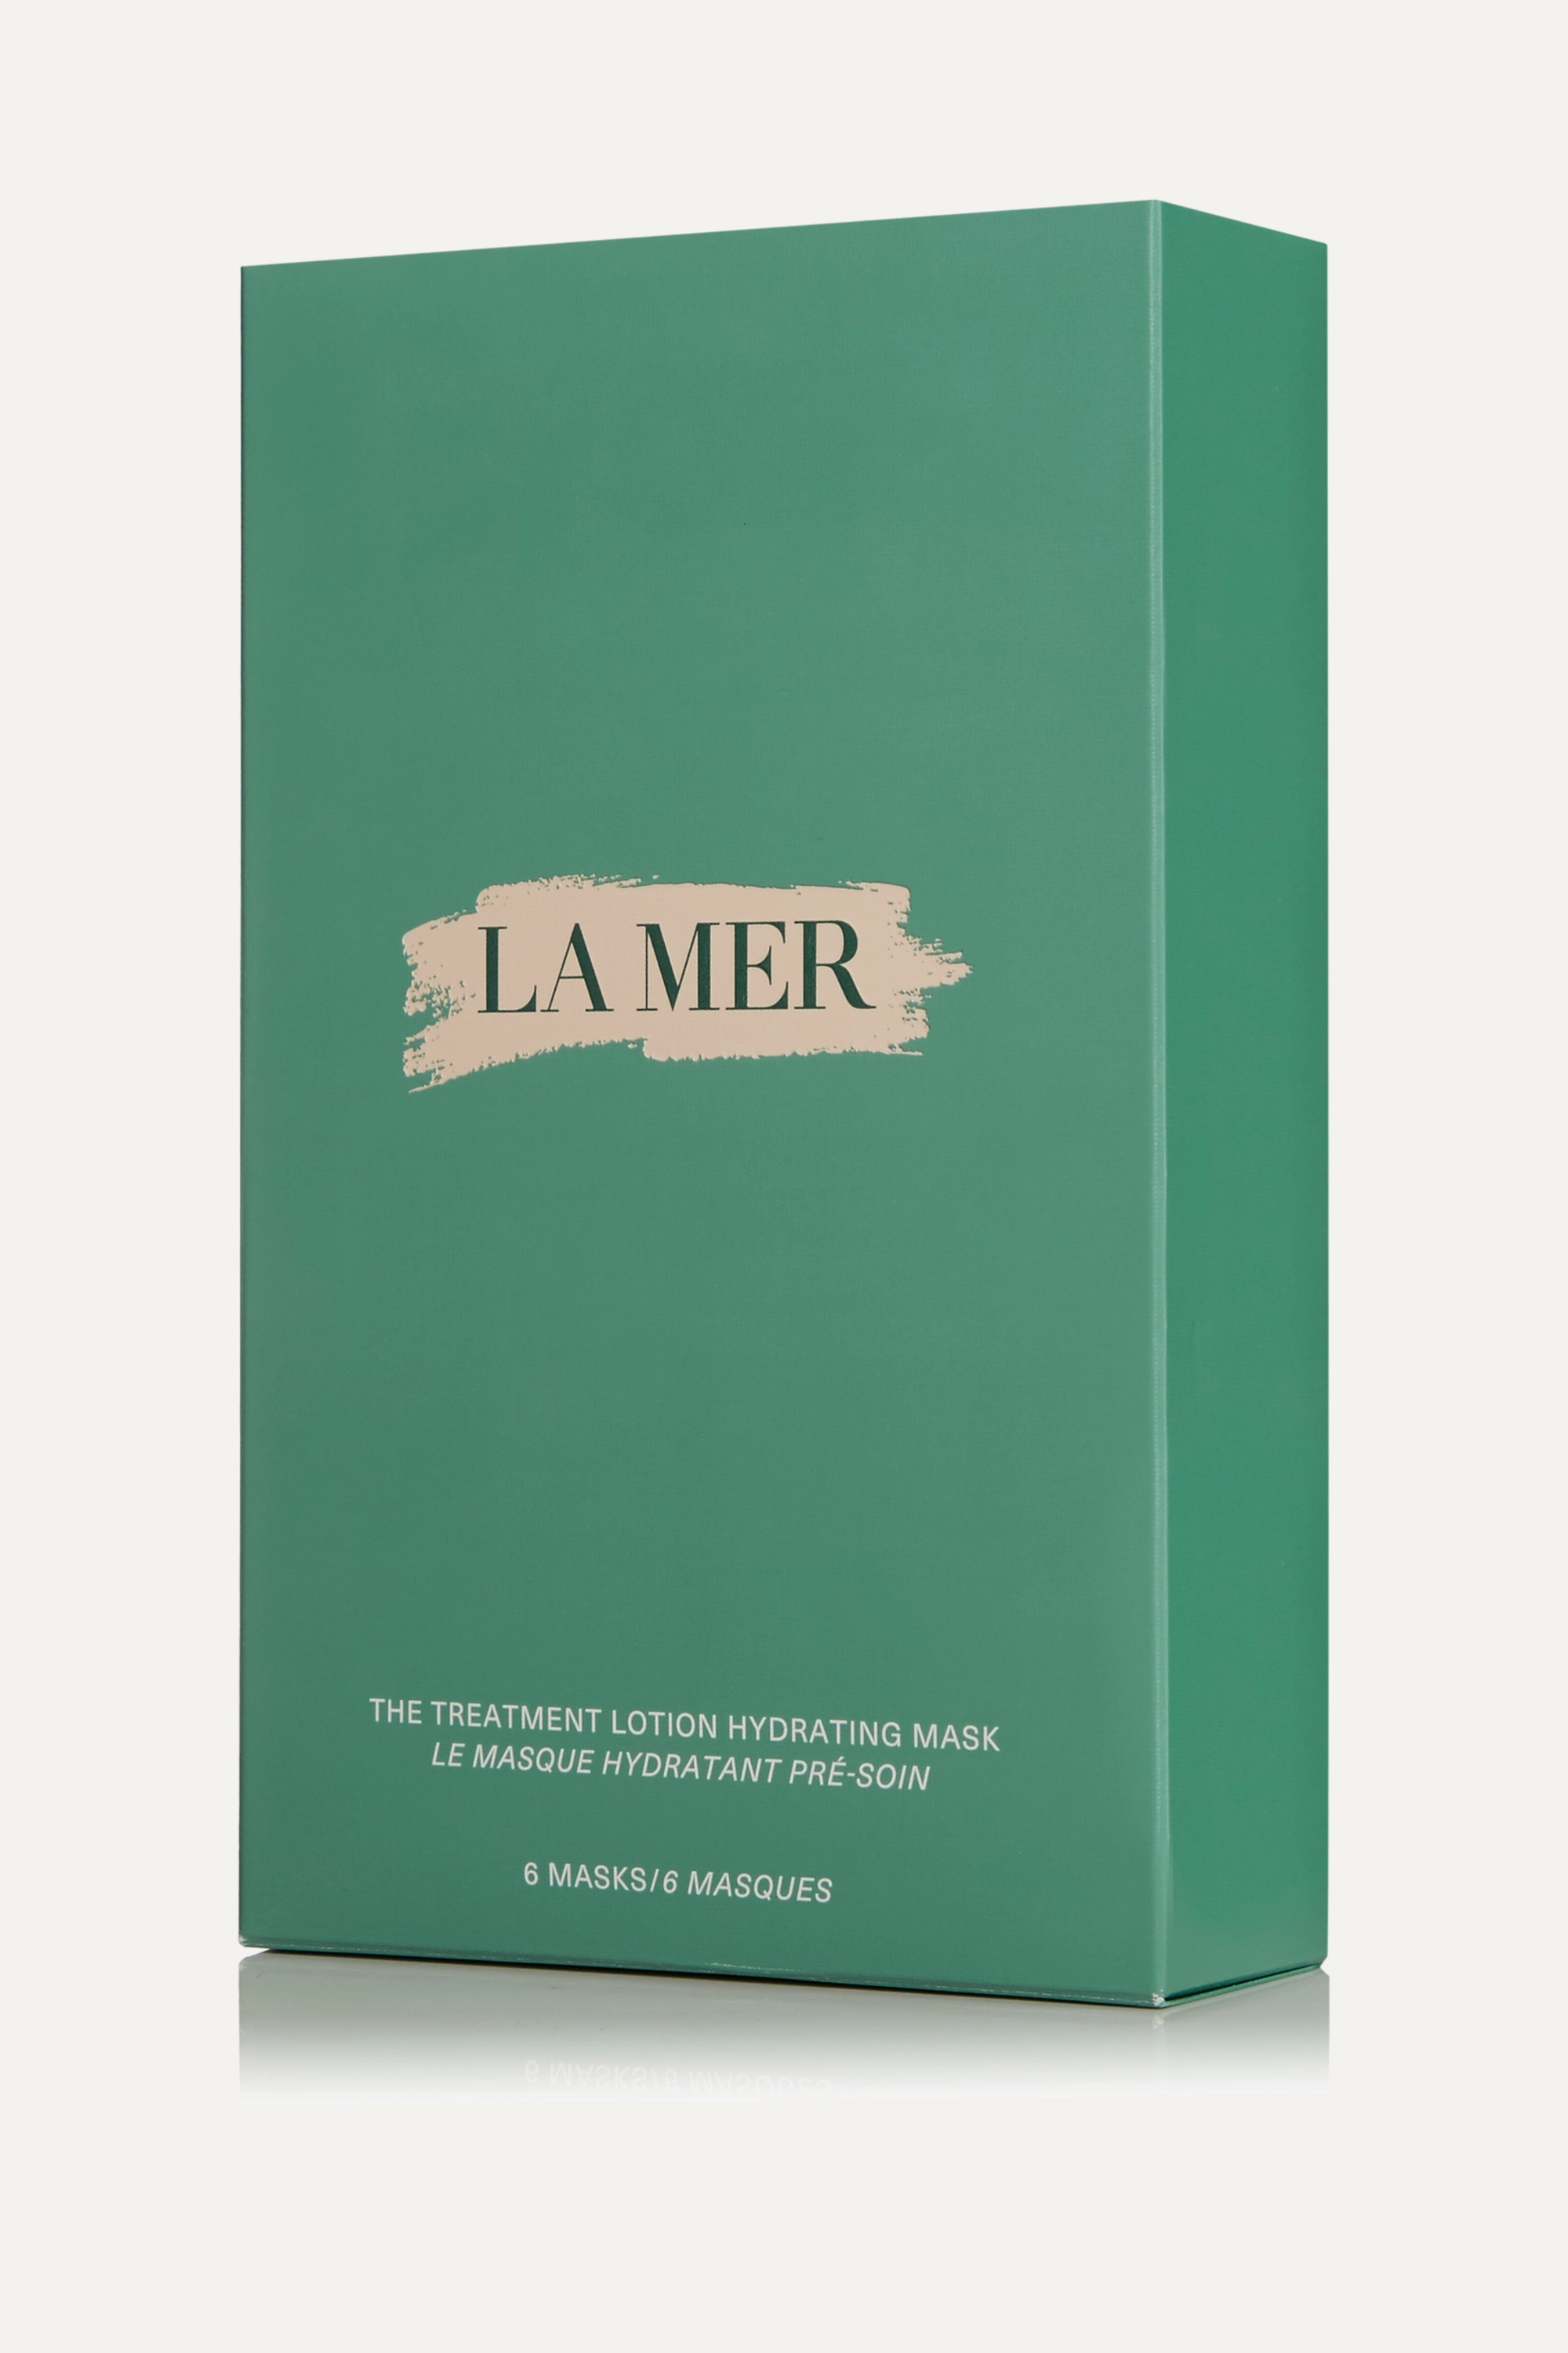 LA MER The Treatment Lotion Hydrating Mask x 6